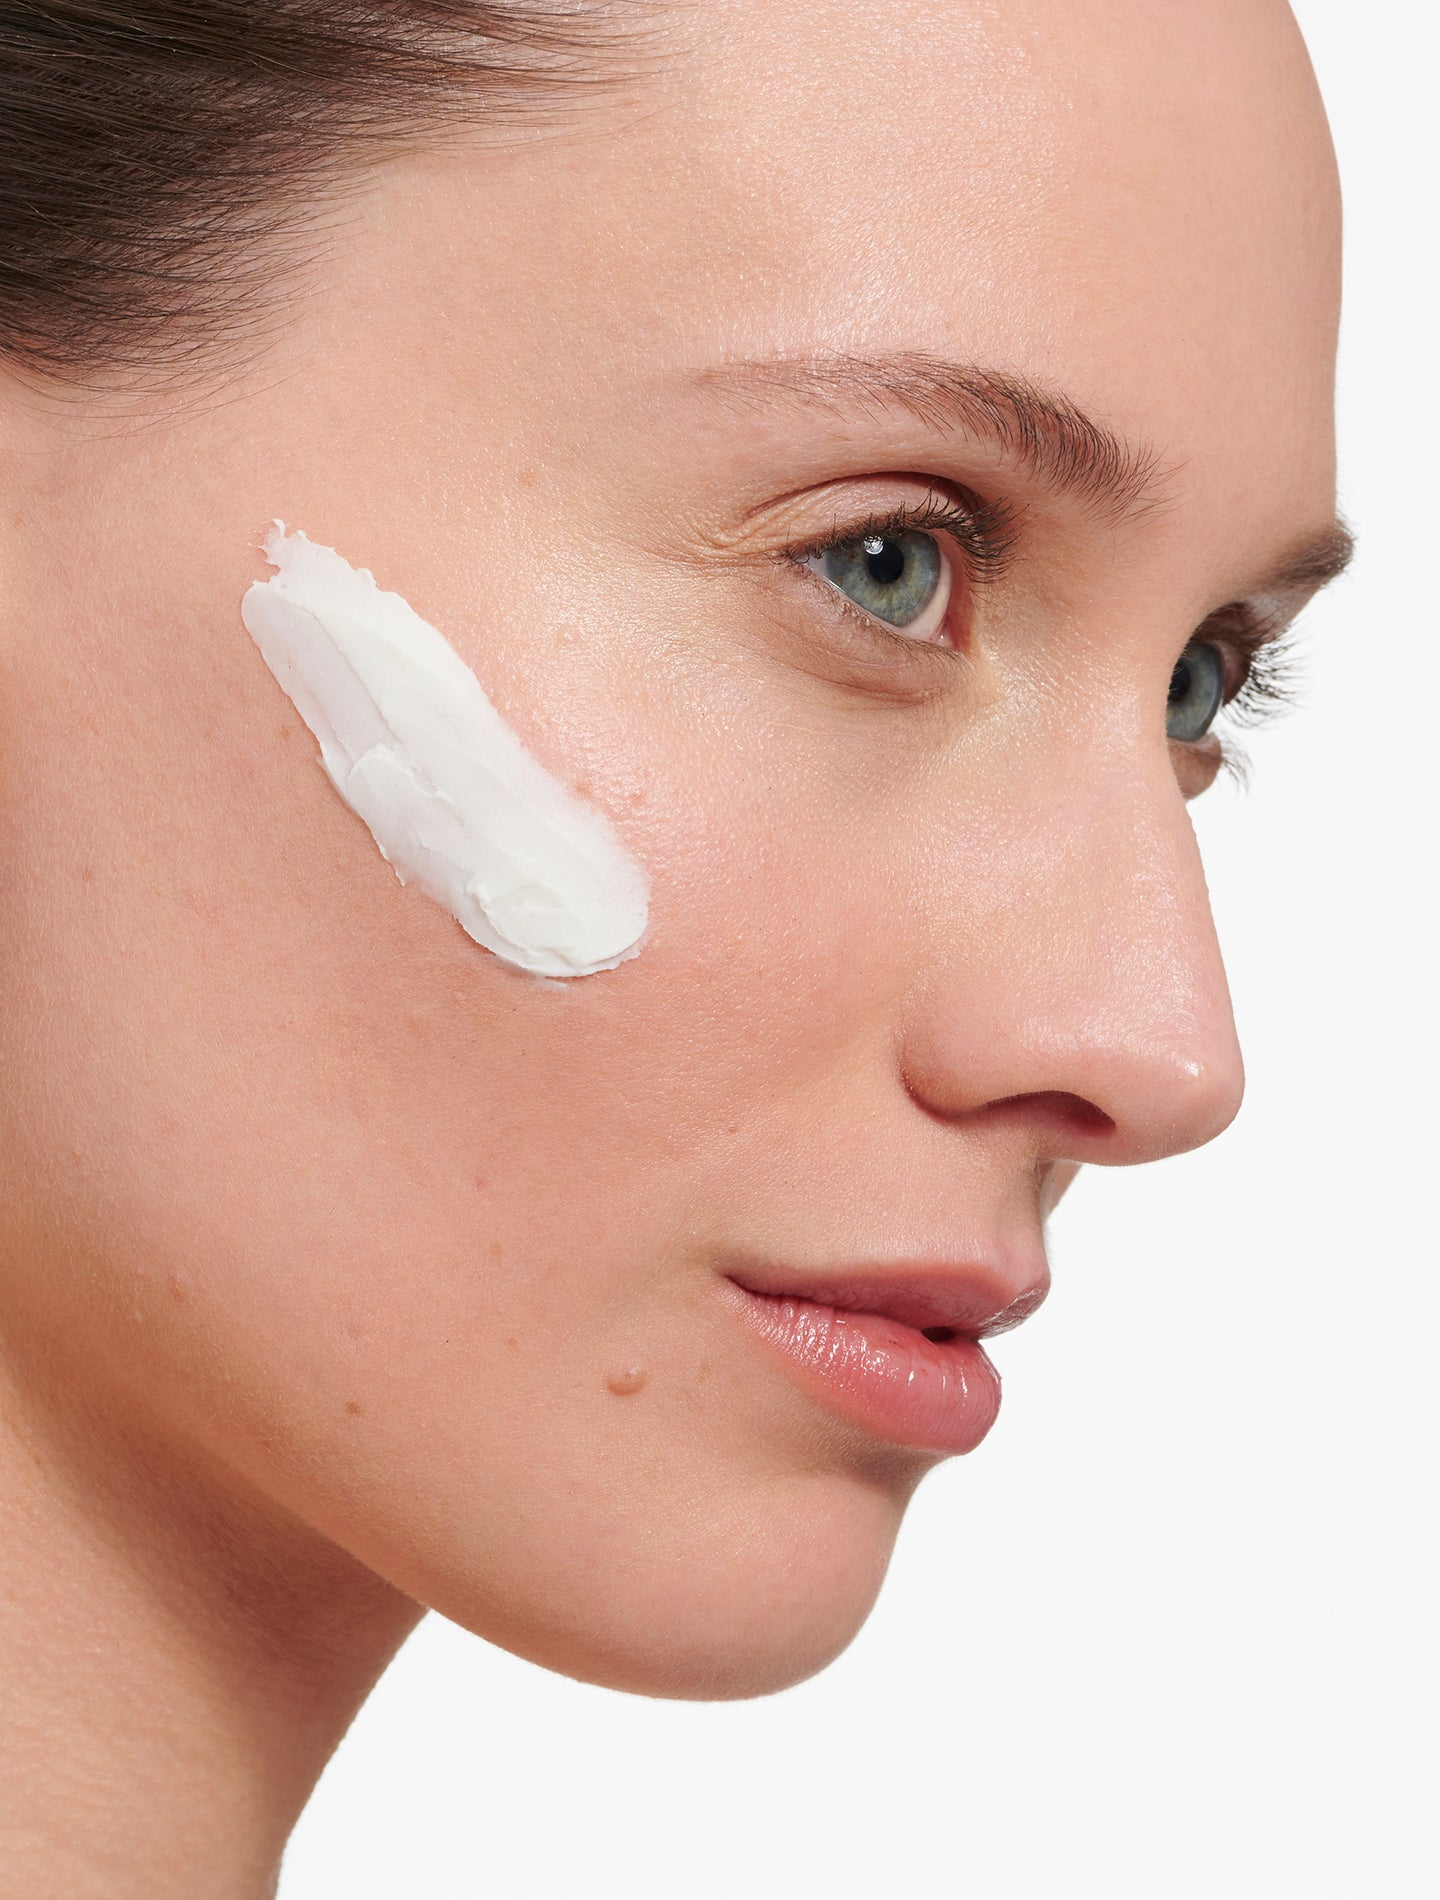 8 Reasons You Have Dry Skin on Your Face, and How to Treat It